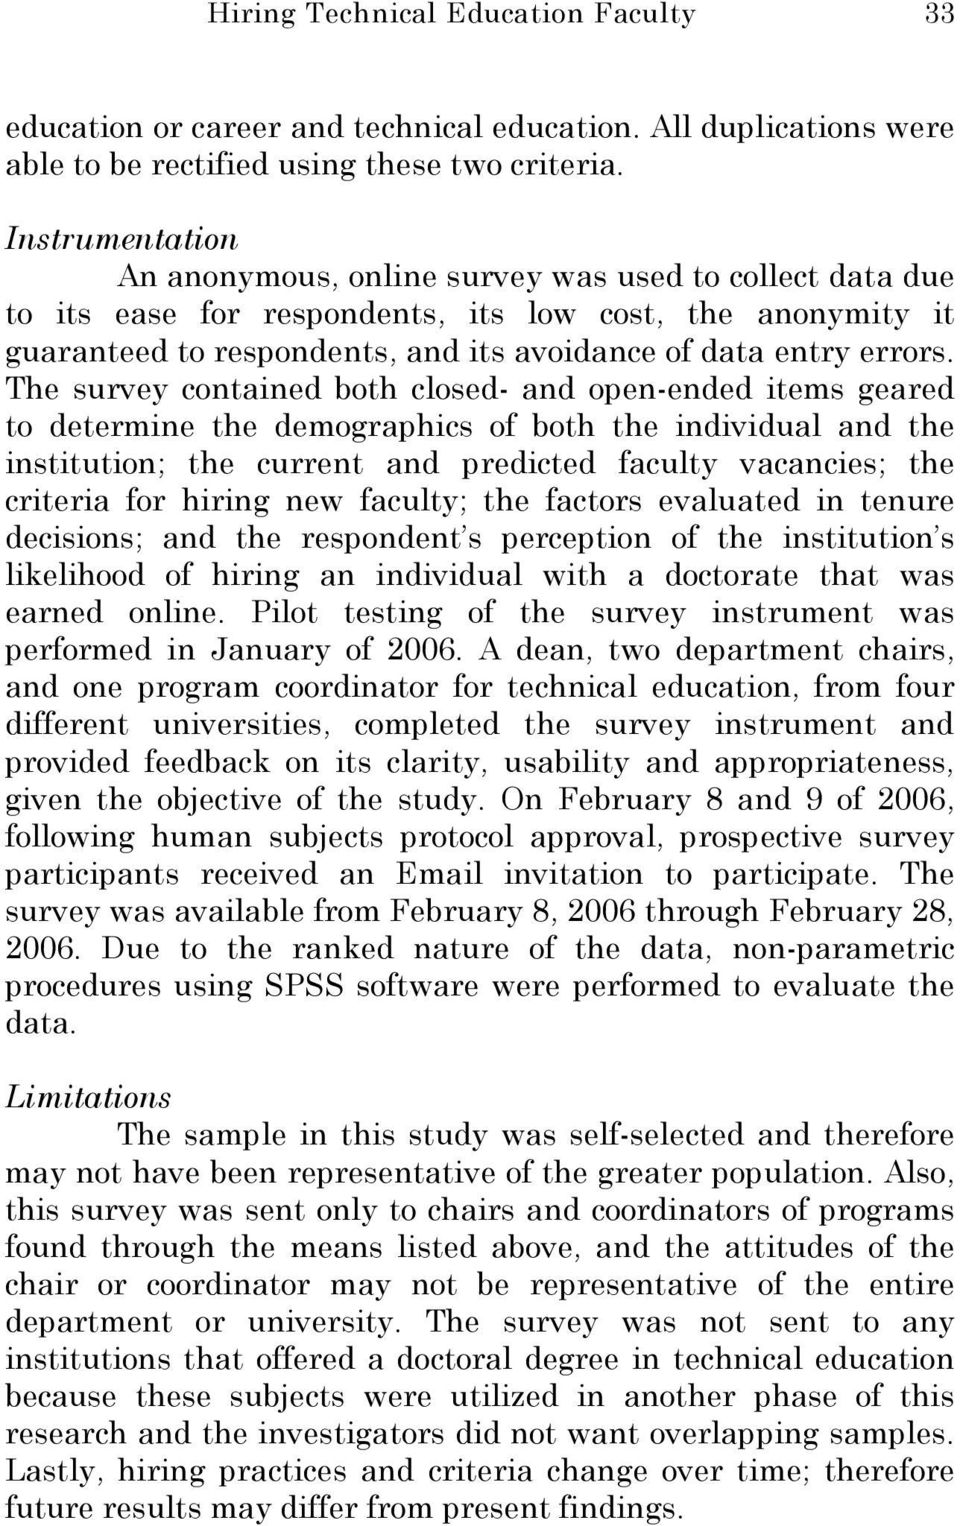 The survey contained both closed- and open-ended items geared to determine the demographics of both the individual and the institution; the current and predicted faculty vacancies; the criteria for